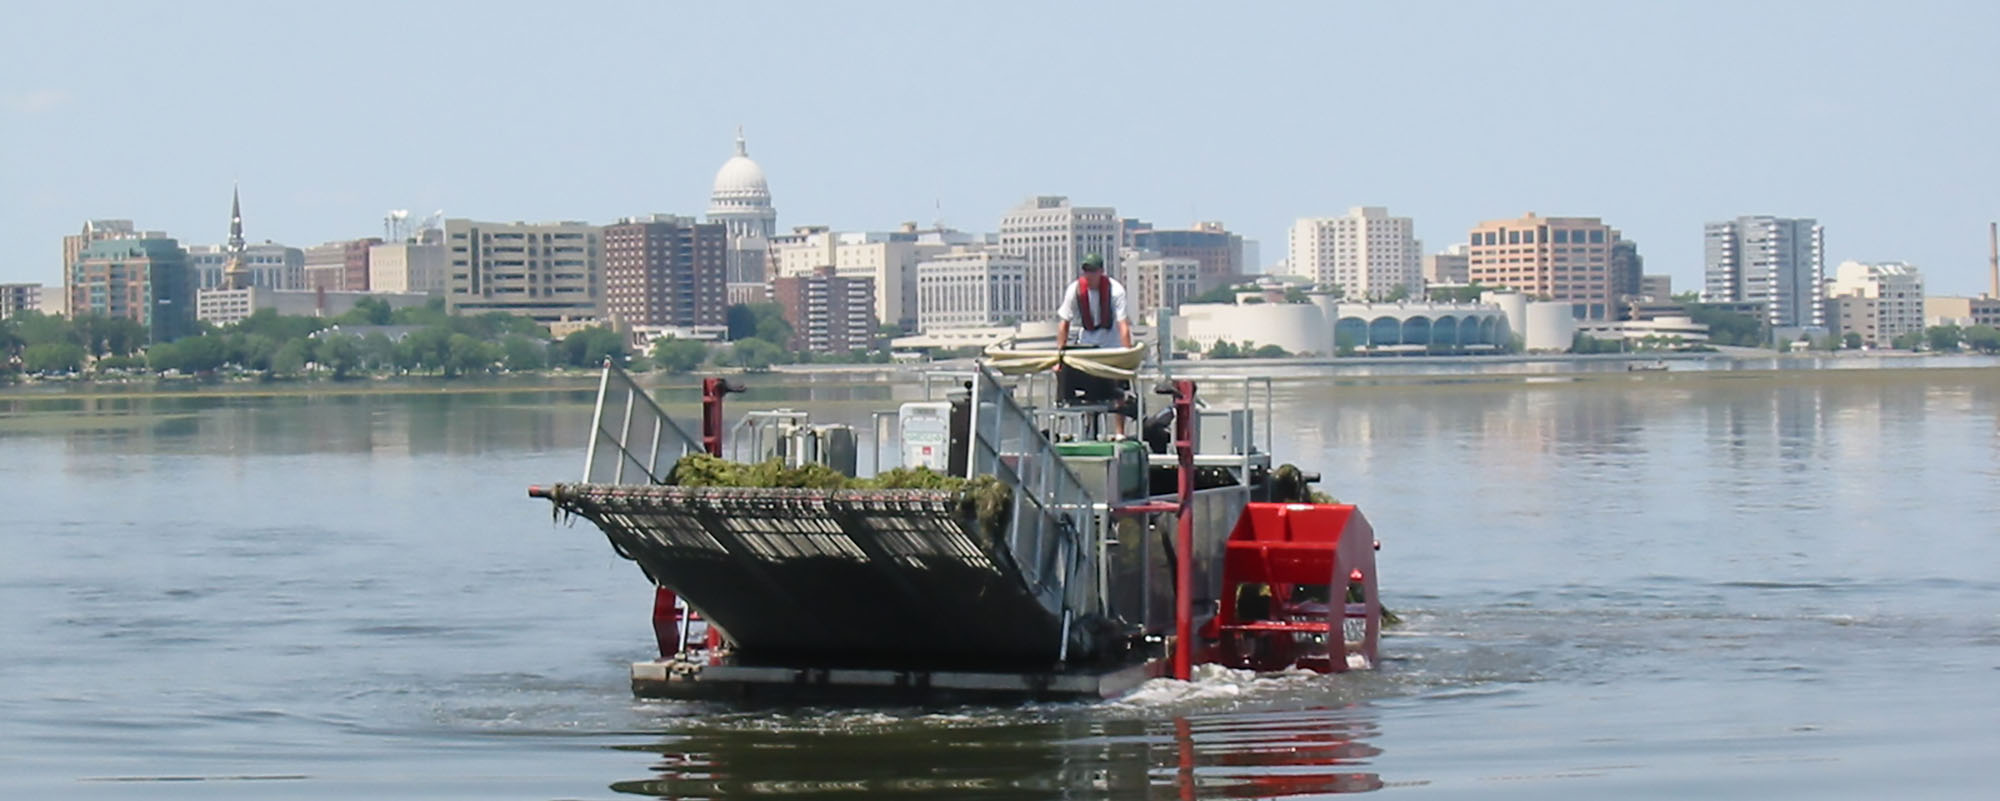 A weed harvester on Lake Monona.